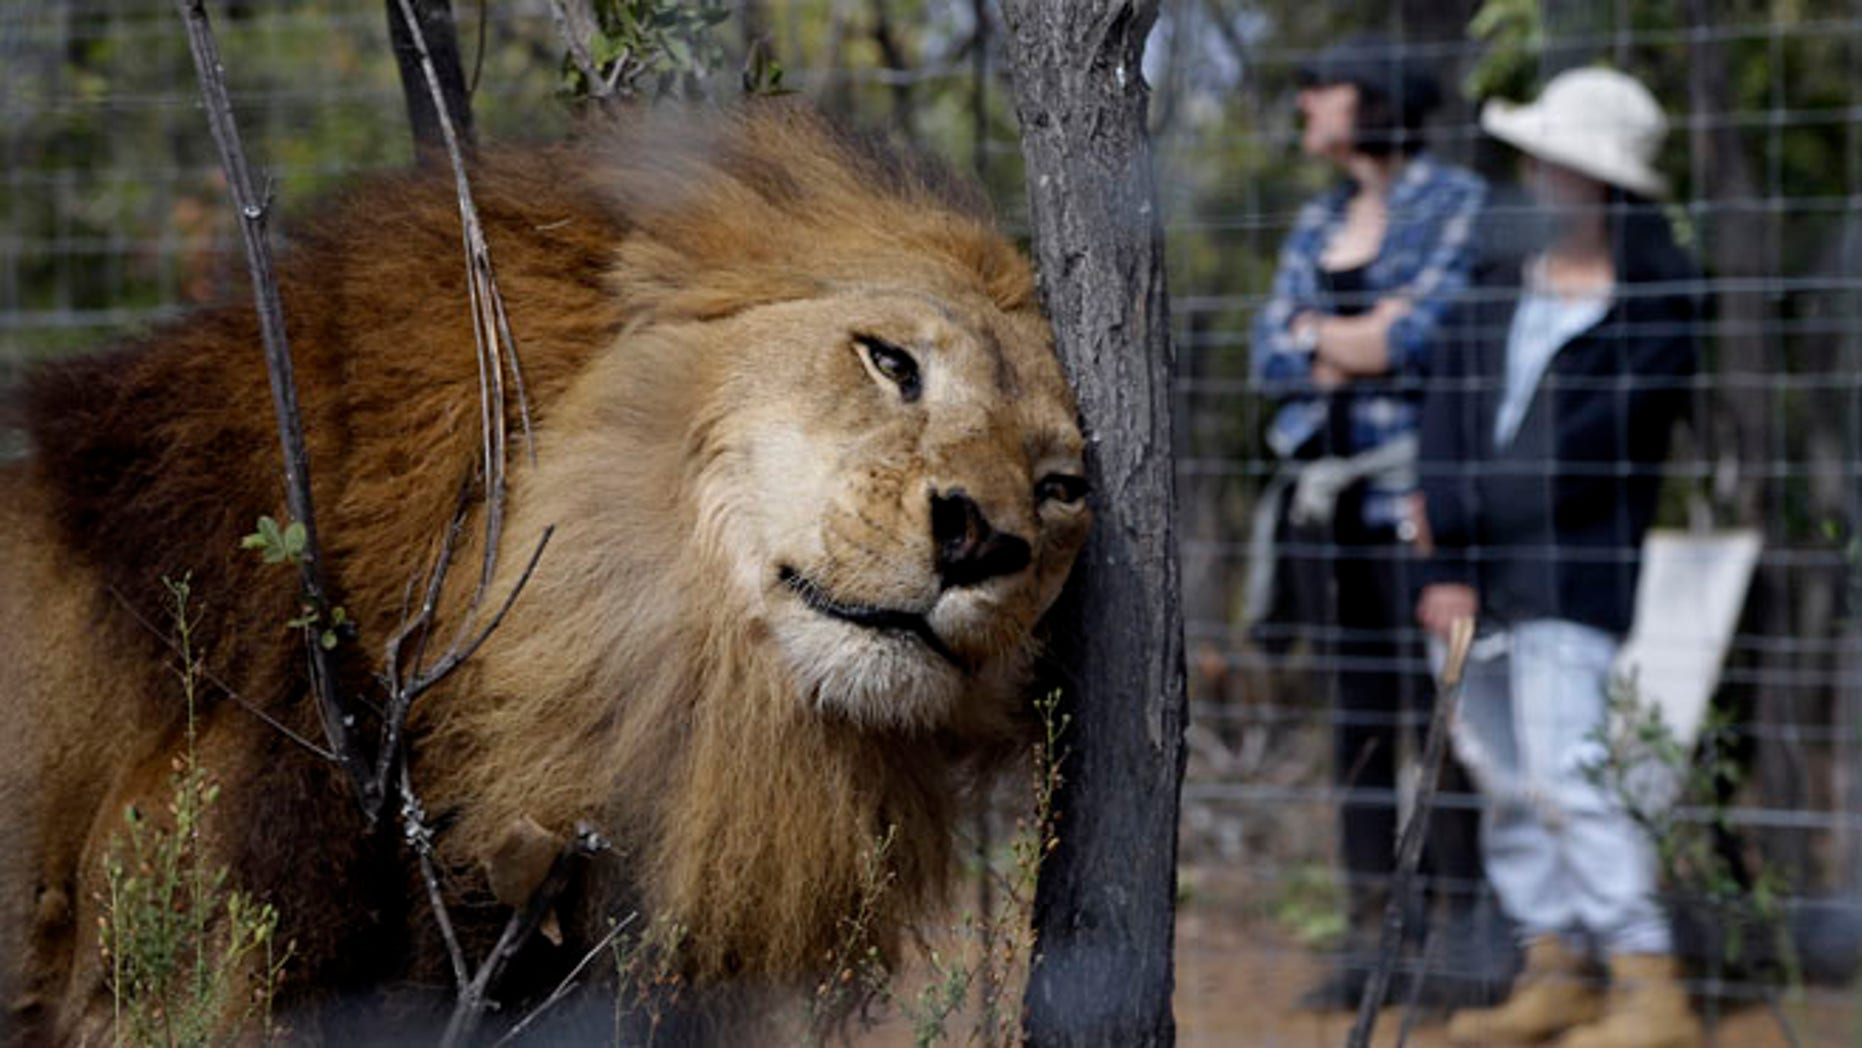 A former circus lion at Emoya Big Cat Sanctuary in Vaalwater, South Africa, Sunday, May 1, 2016.